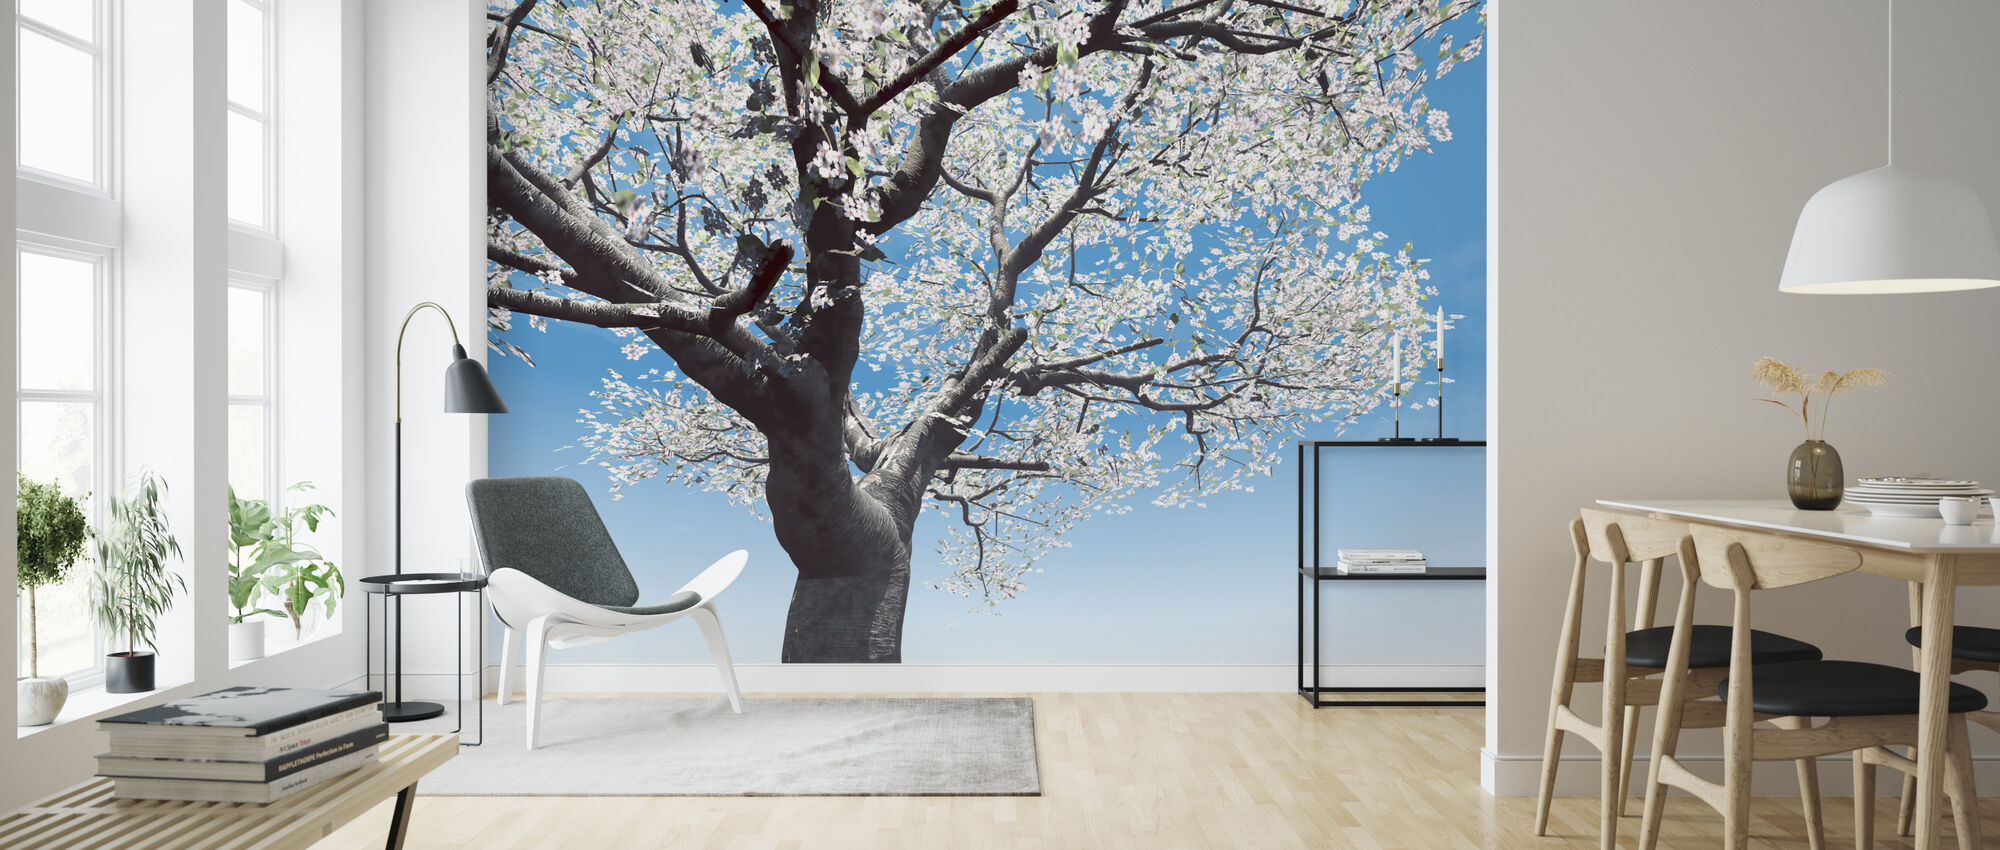 Blossoming Cherry-Tree - Wallpaper - Living Room